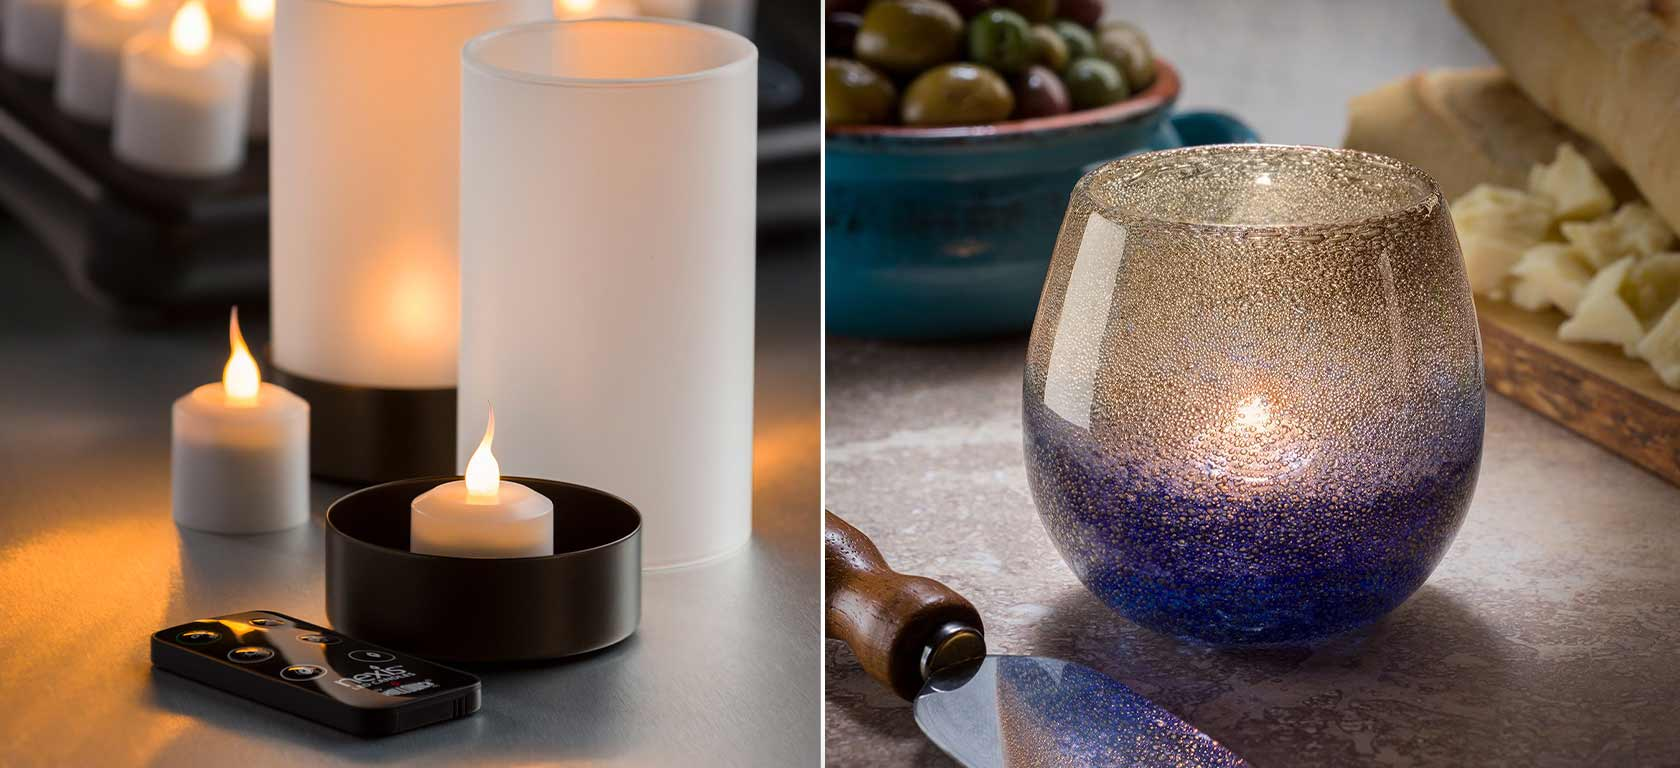 On the left electric remote controlled candles, on the right blue-gradient frosted glass candle holder.